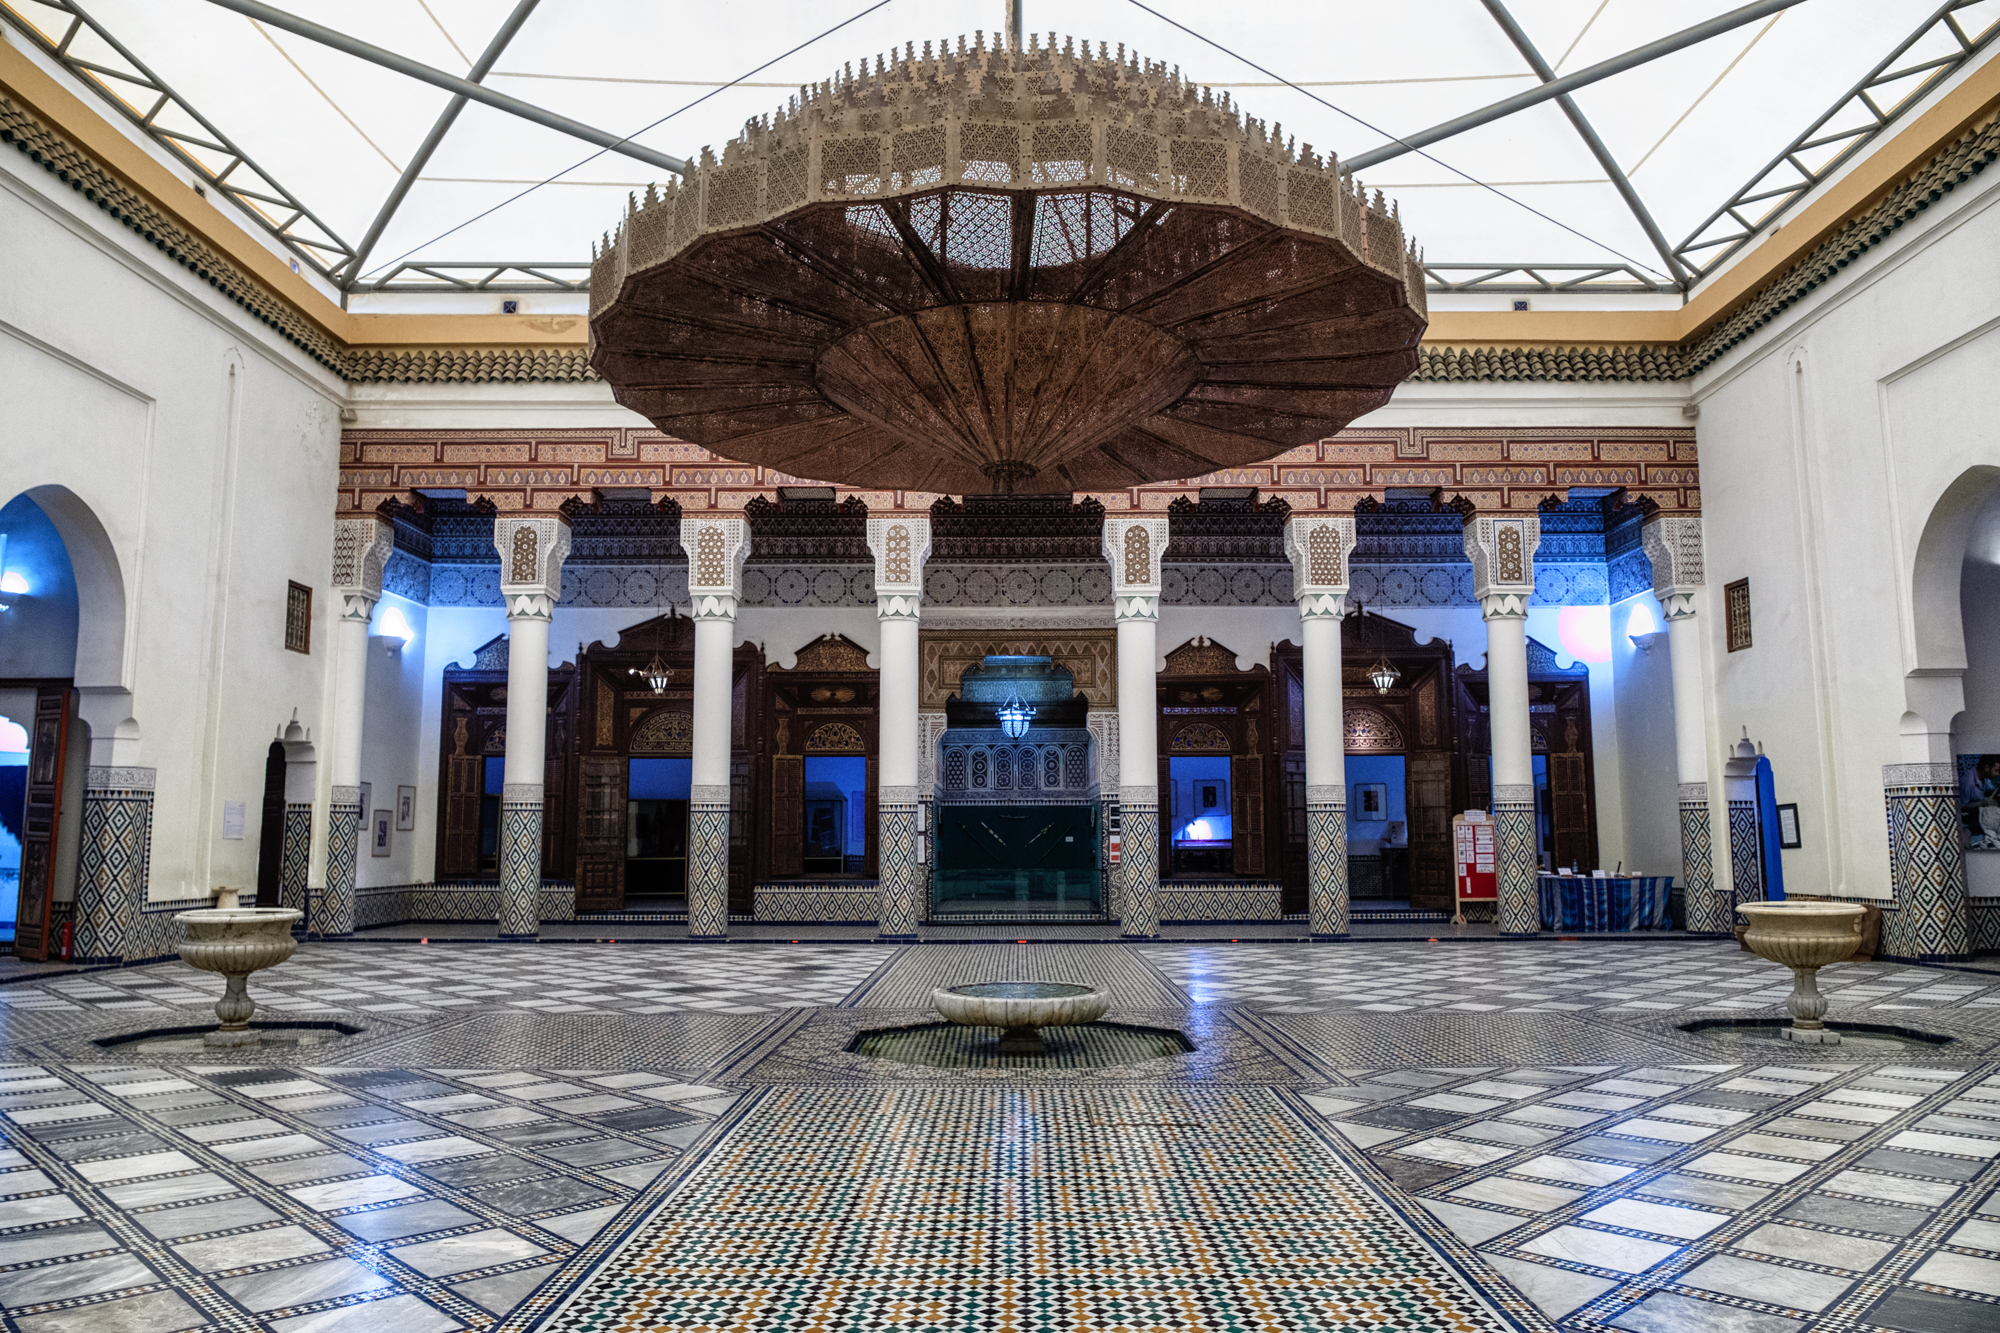 Inside the stunning Musee De Marrakech